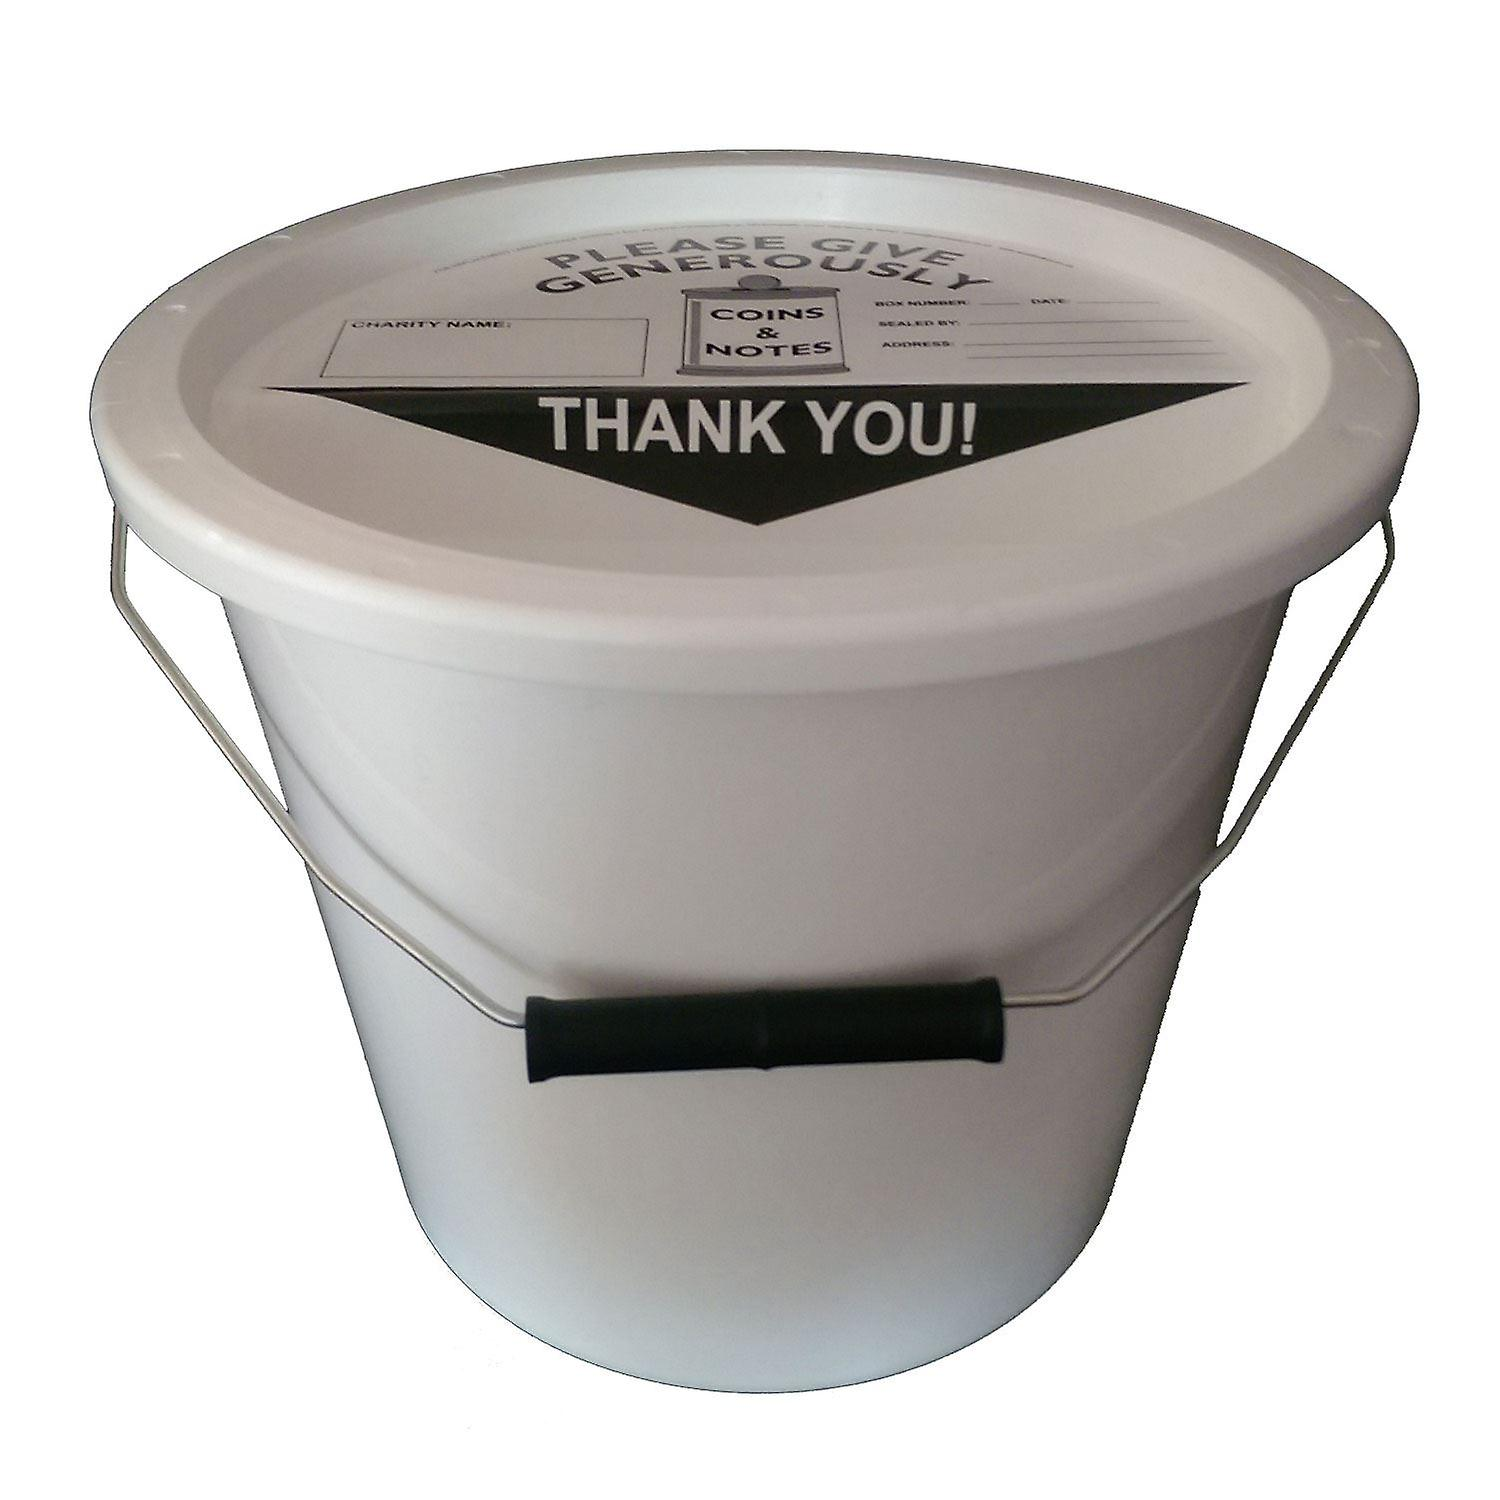 4 Charity Money Collection Buckets 5.7 Litres - White